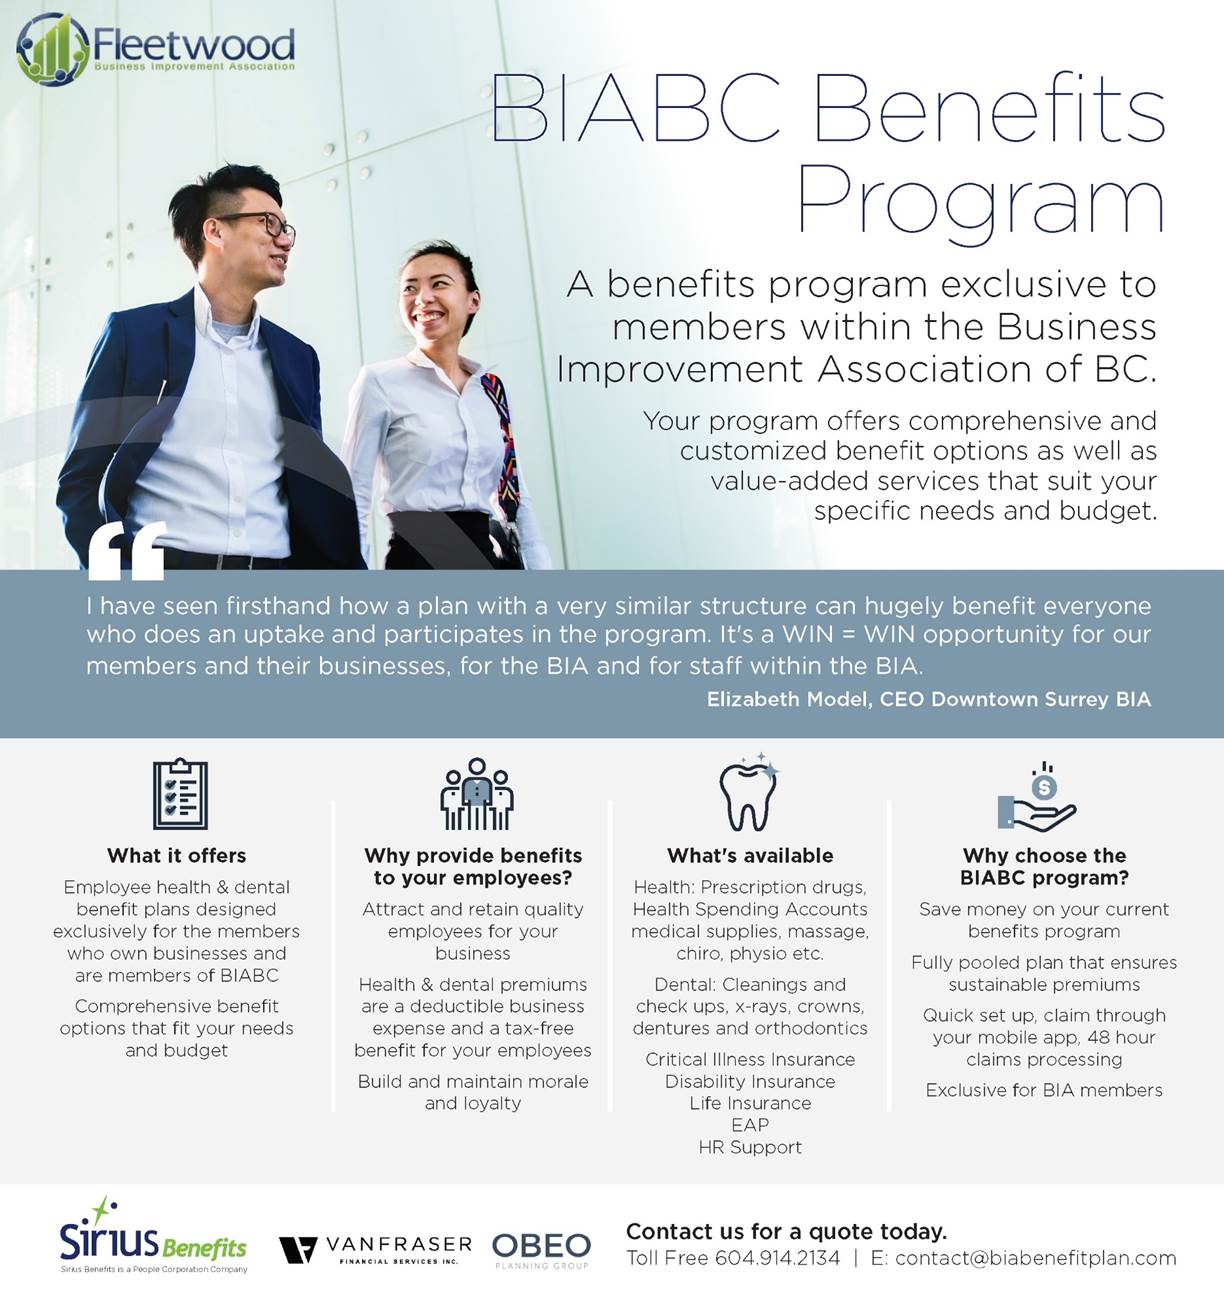 Fleetwood BIA Benefits – Fleetwood Business Improvement